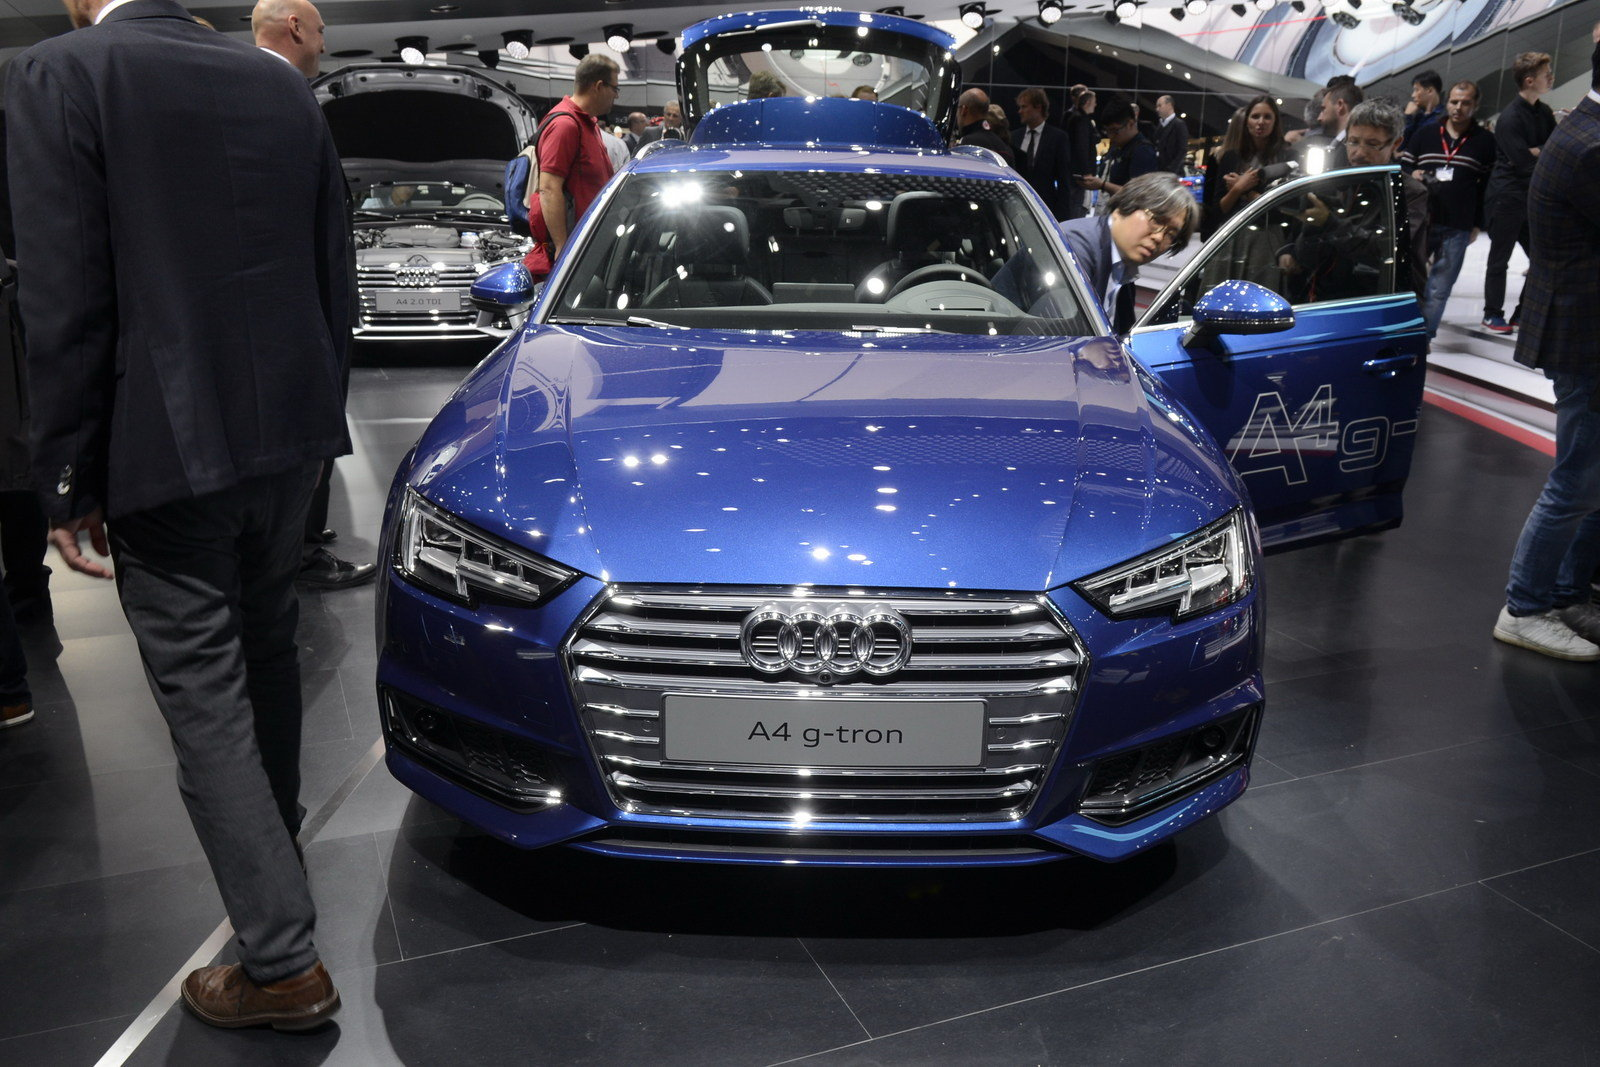 2016 audi a4 g tron picture 646675 car review top speed. Black Bedroom Furniture Sets. Home Design Ideas